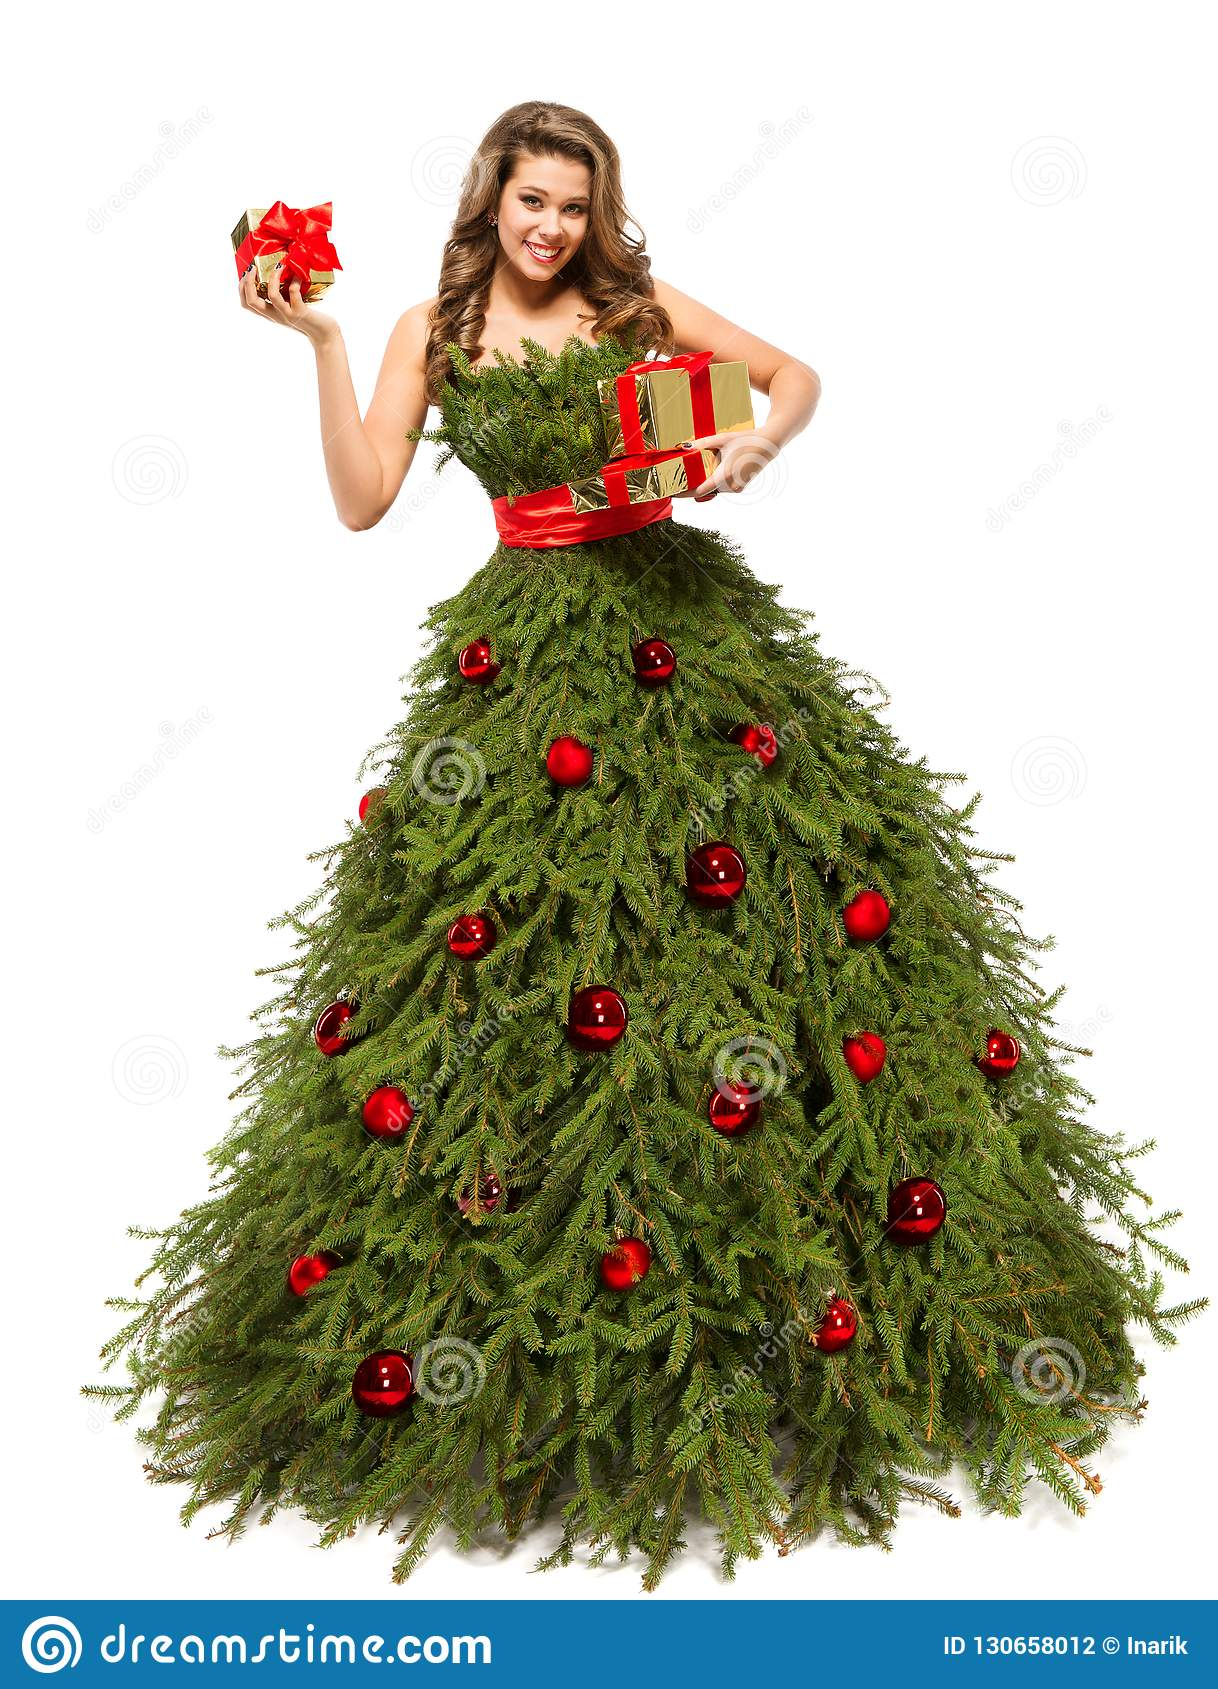 Christmas Tree Dress, Fashion Woman with Present Gifts, White